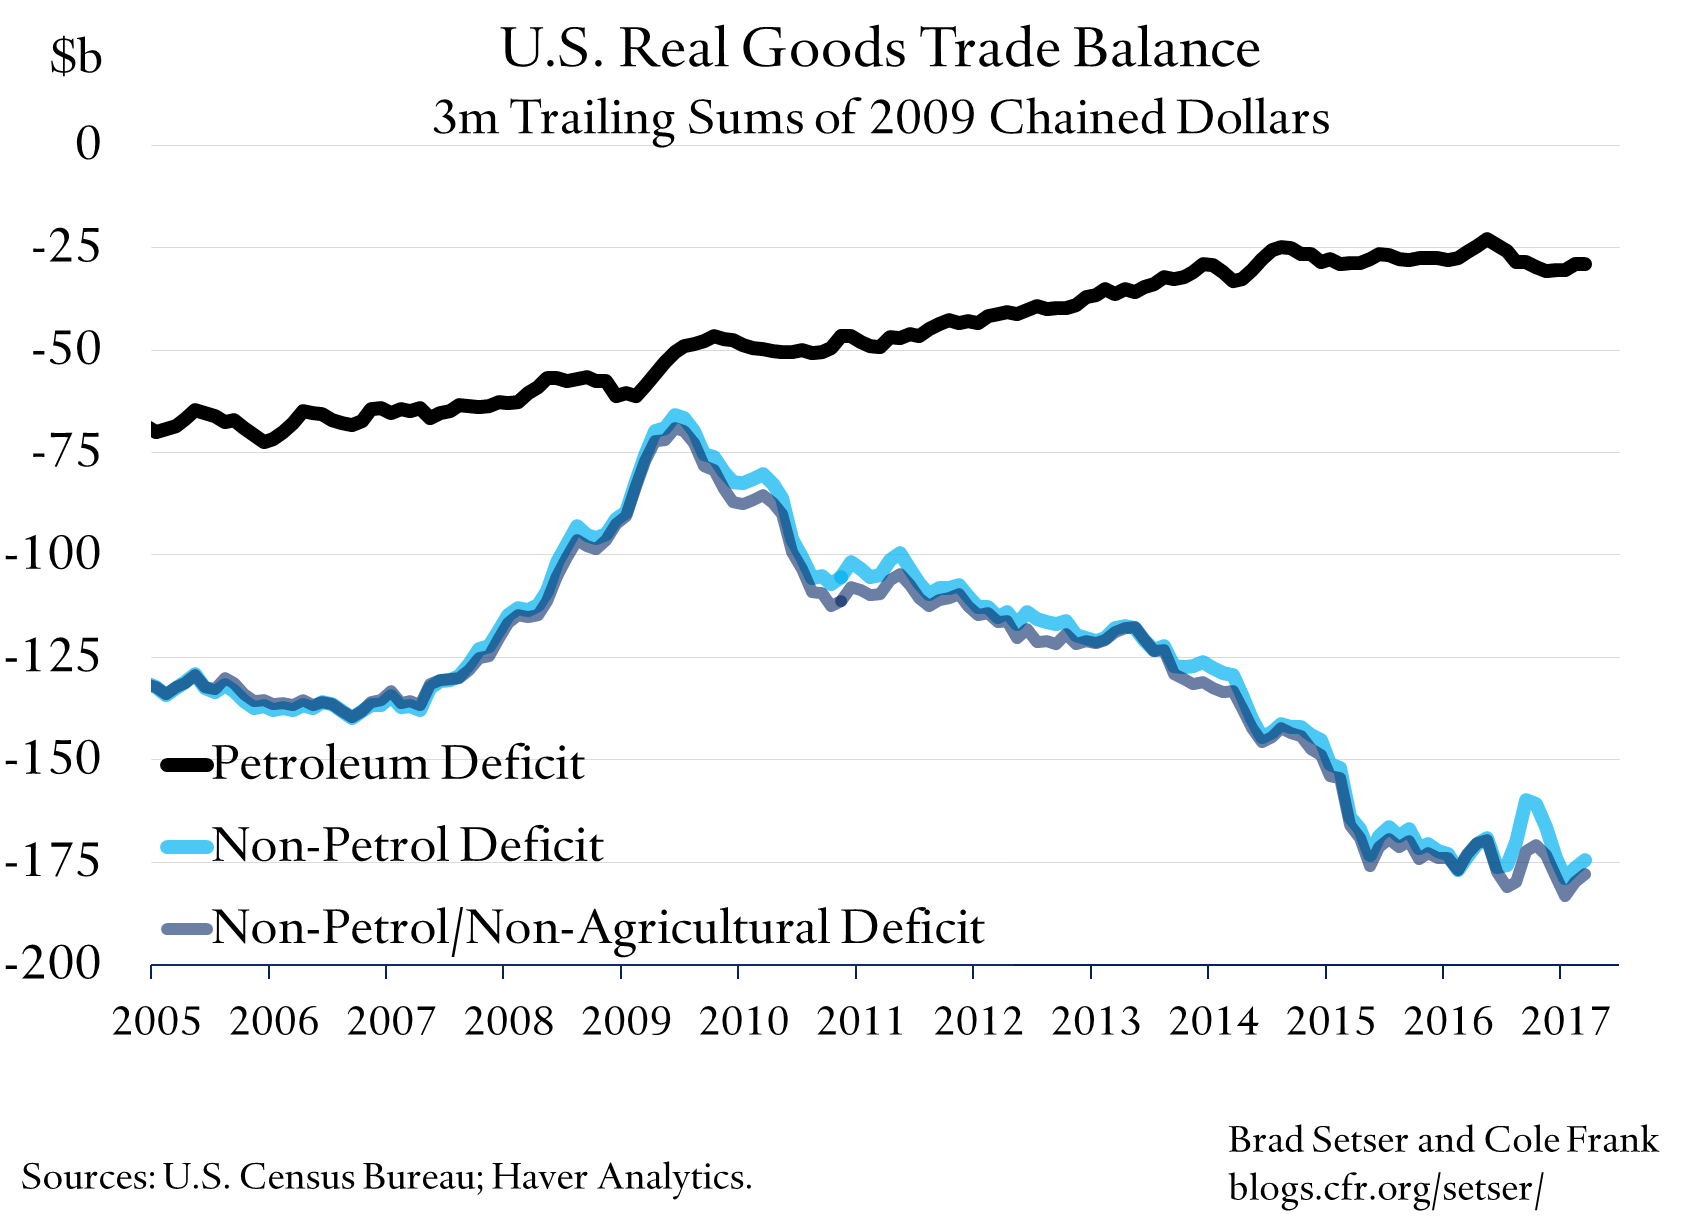 U.S. Trade Deficit Stable in Q1